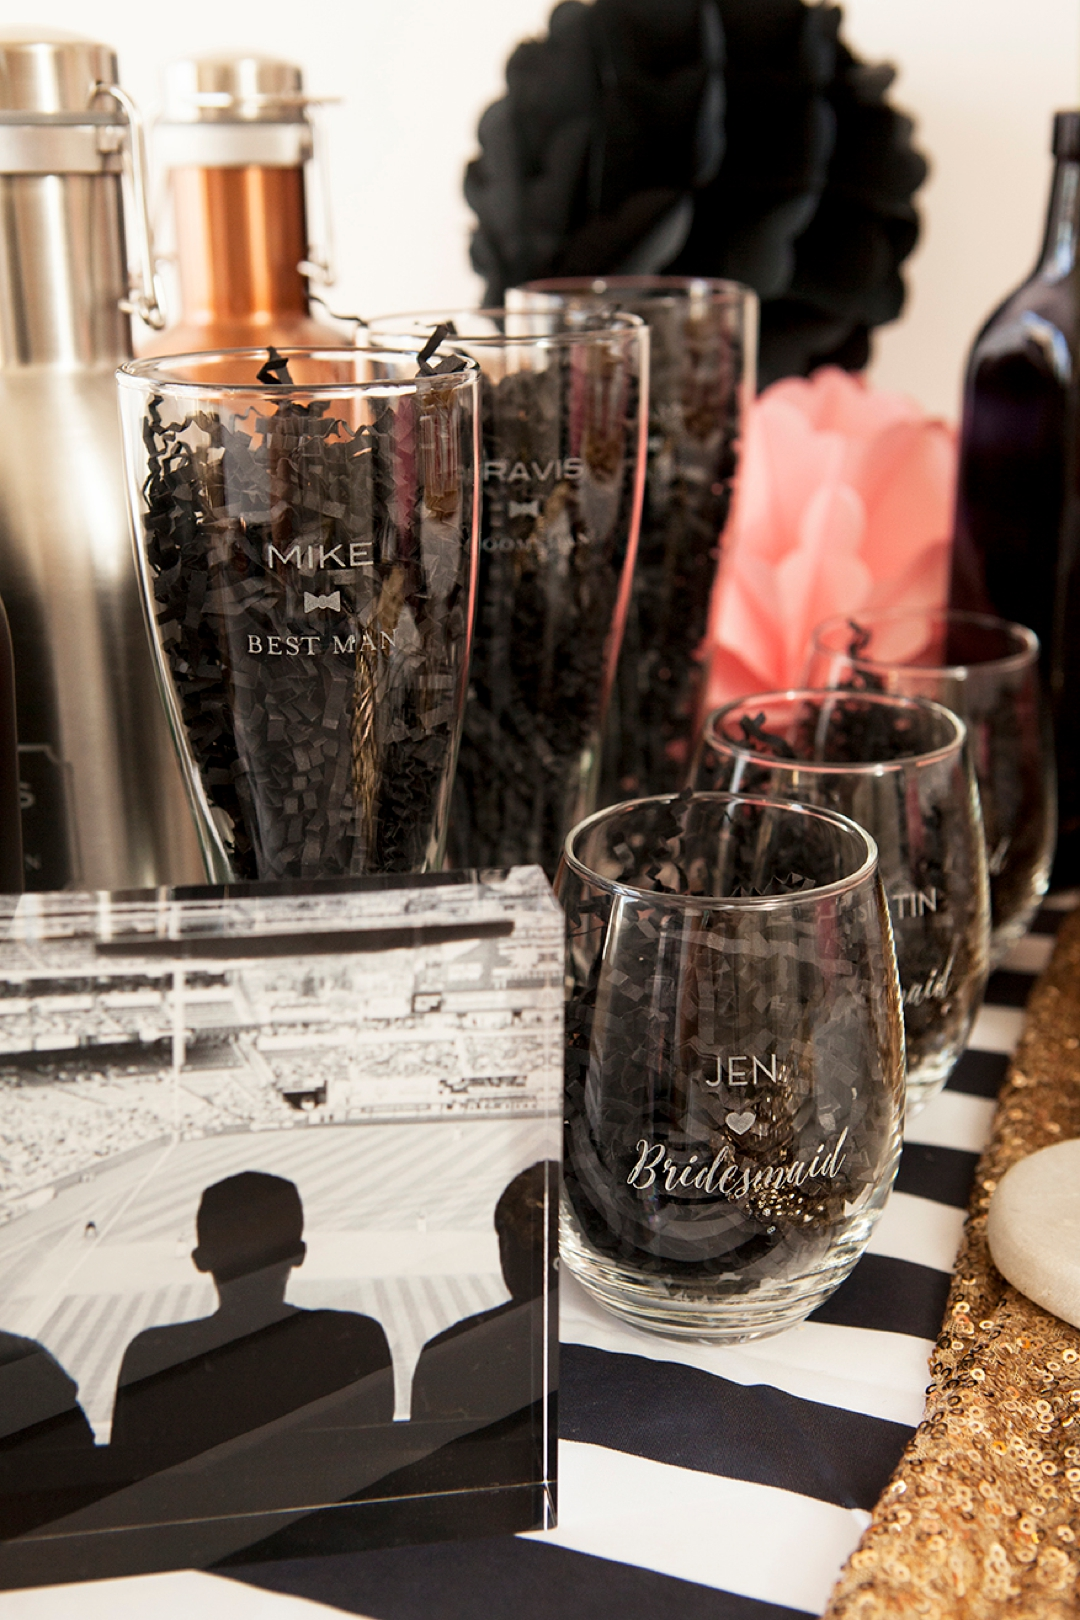 Personalized wine glasses and pilsner glasses for your bridal party!